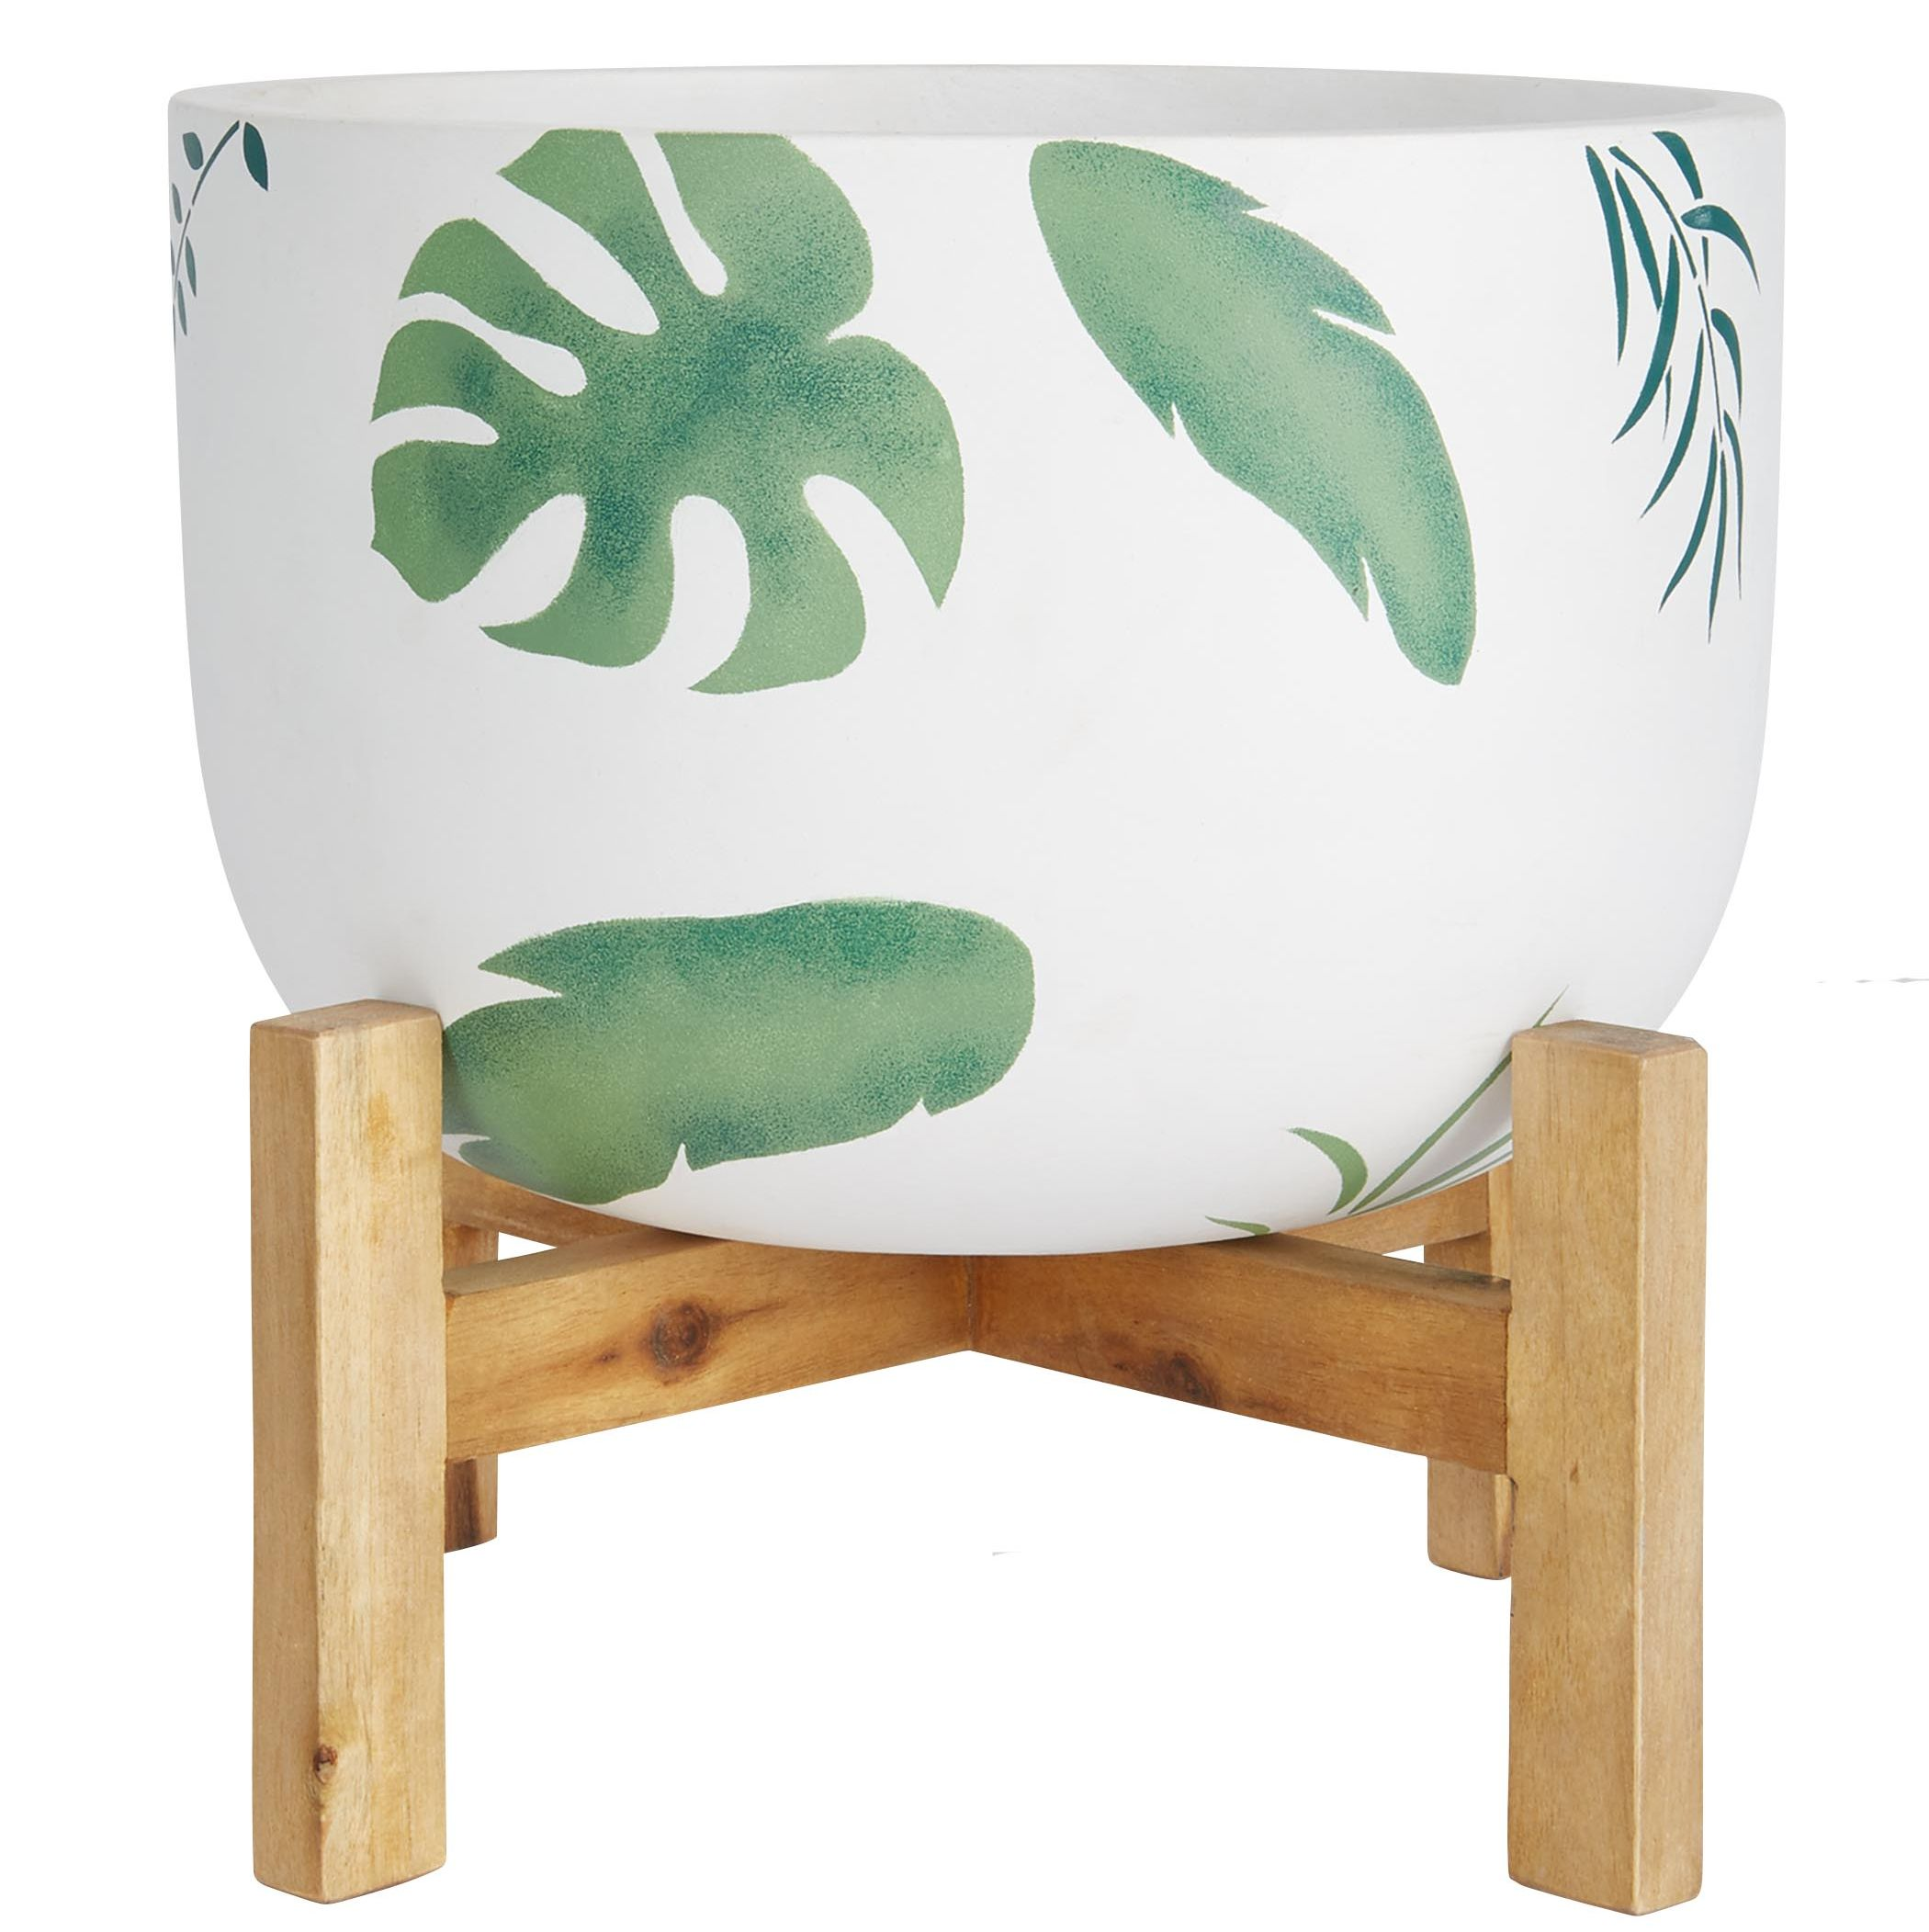 Leaf Print Pot on Wooden Legs